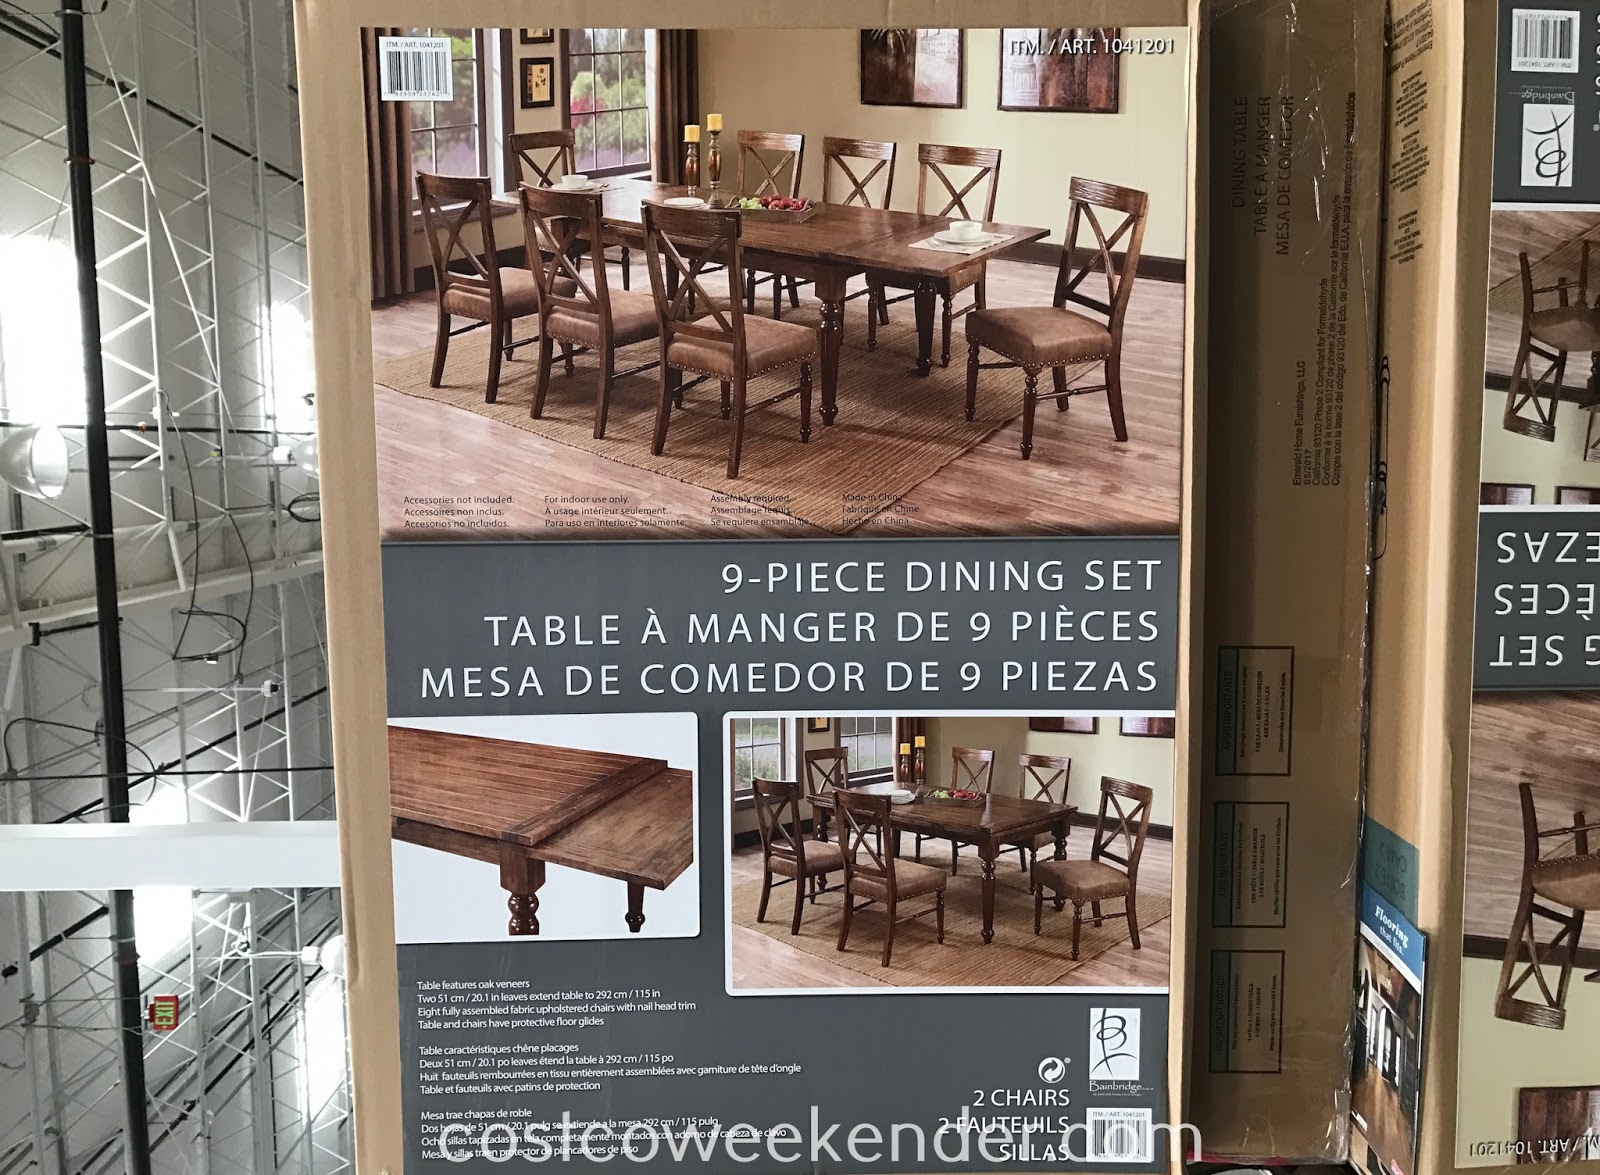 Costco 1041201 - Enjoy Sunday dinners with the family with the Bainbridge 9-piece Dining Set